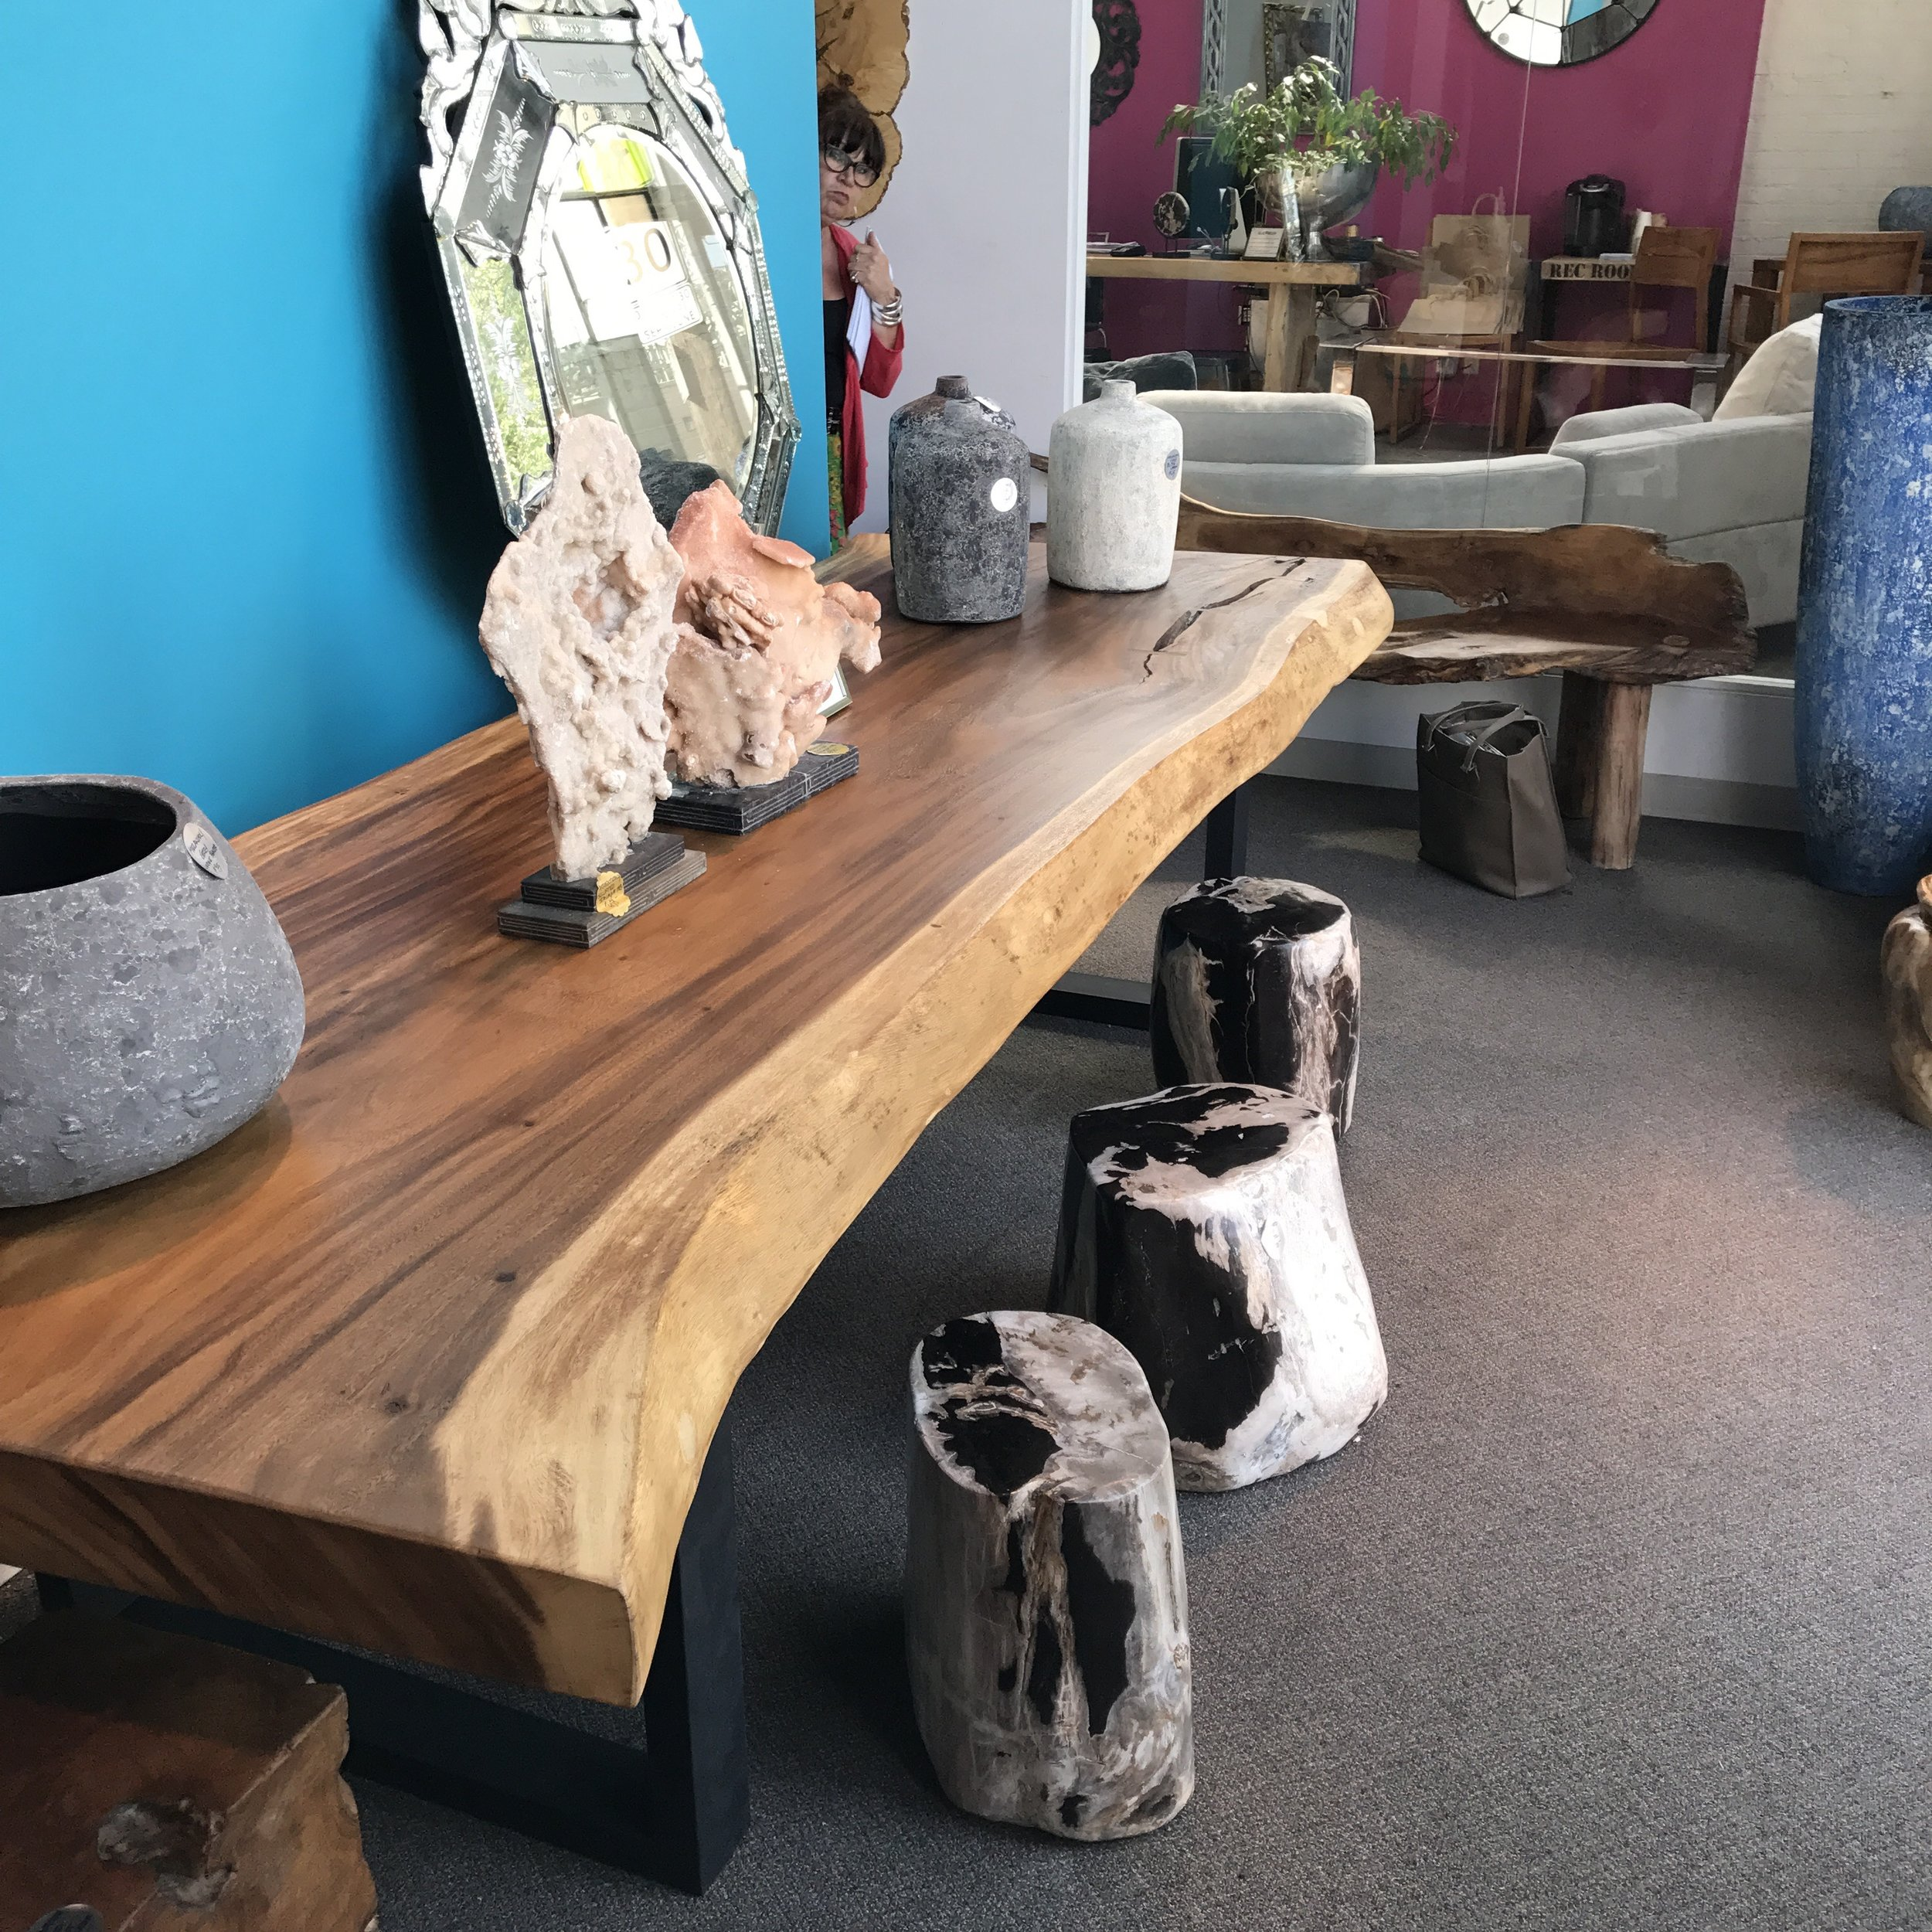 Majestic Live edge Table. Mario platform bed. Blue Moon Furniture. Artista Show Home Furniture. Winnipeg parade of homes 2017 furniture.jpg